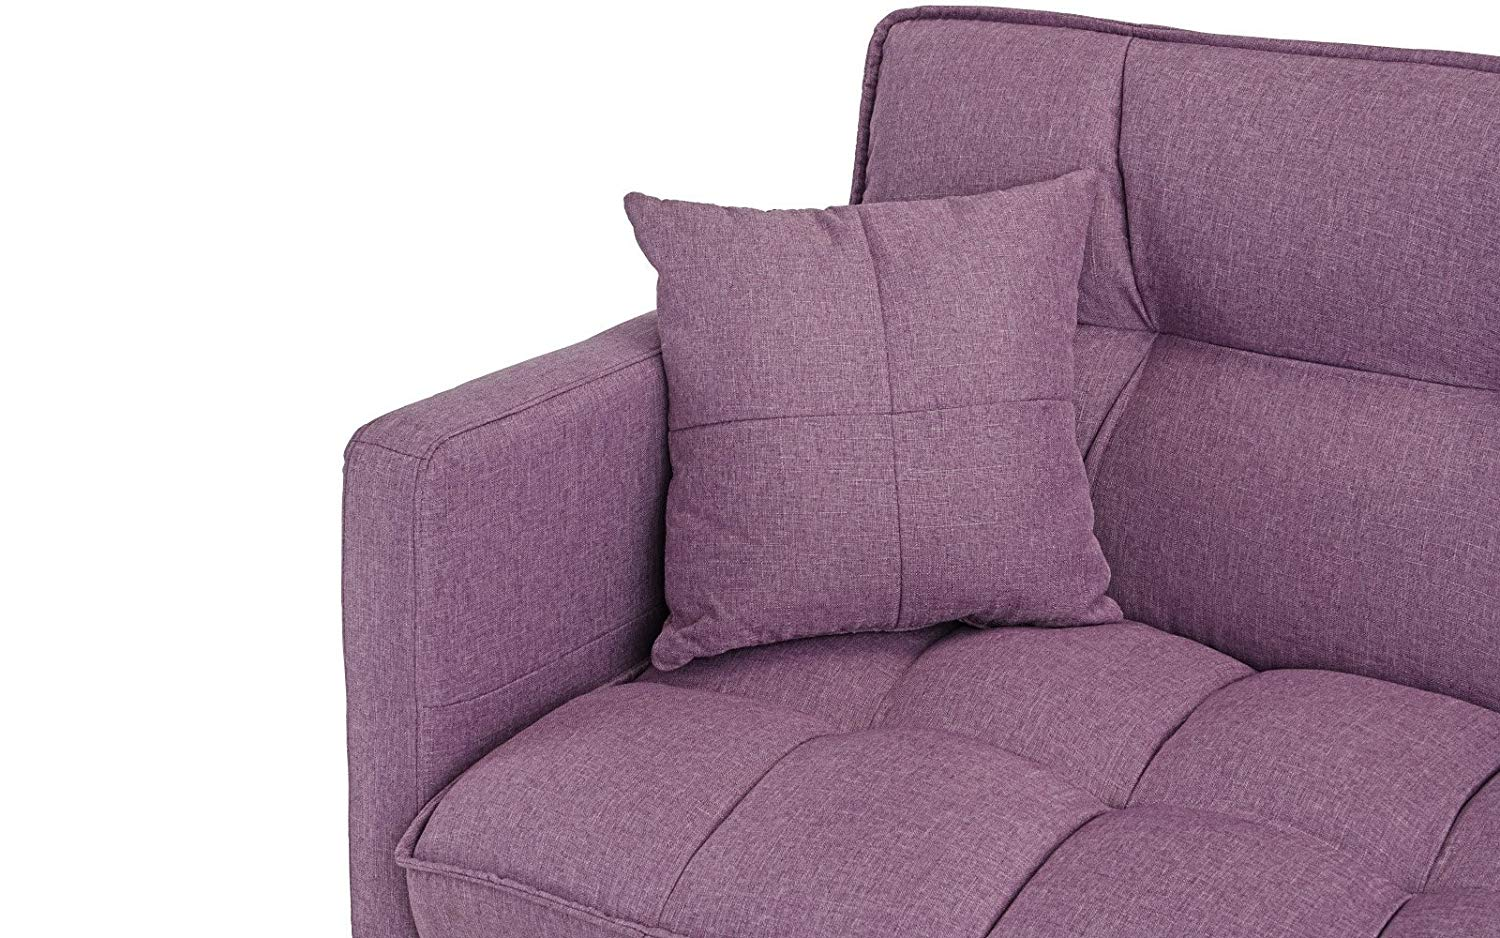 Modern Plush Tufted Linen Best Prices Purple sleeper Sofa ...